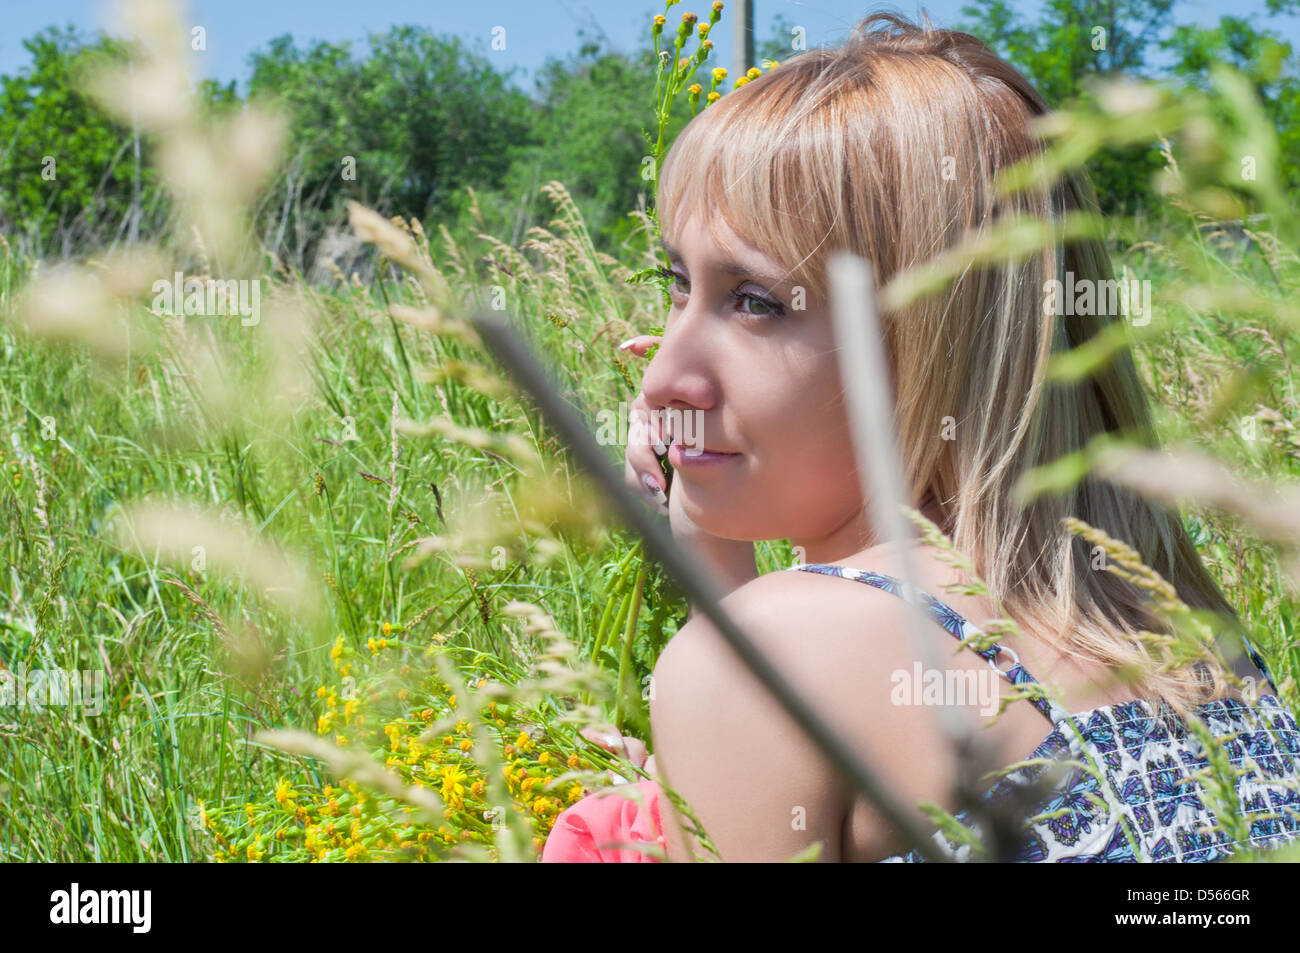 the beautiful young girl on a meadow collects flowers and the sun basks in - Stock Image